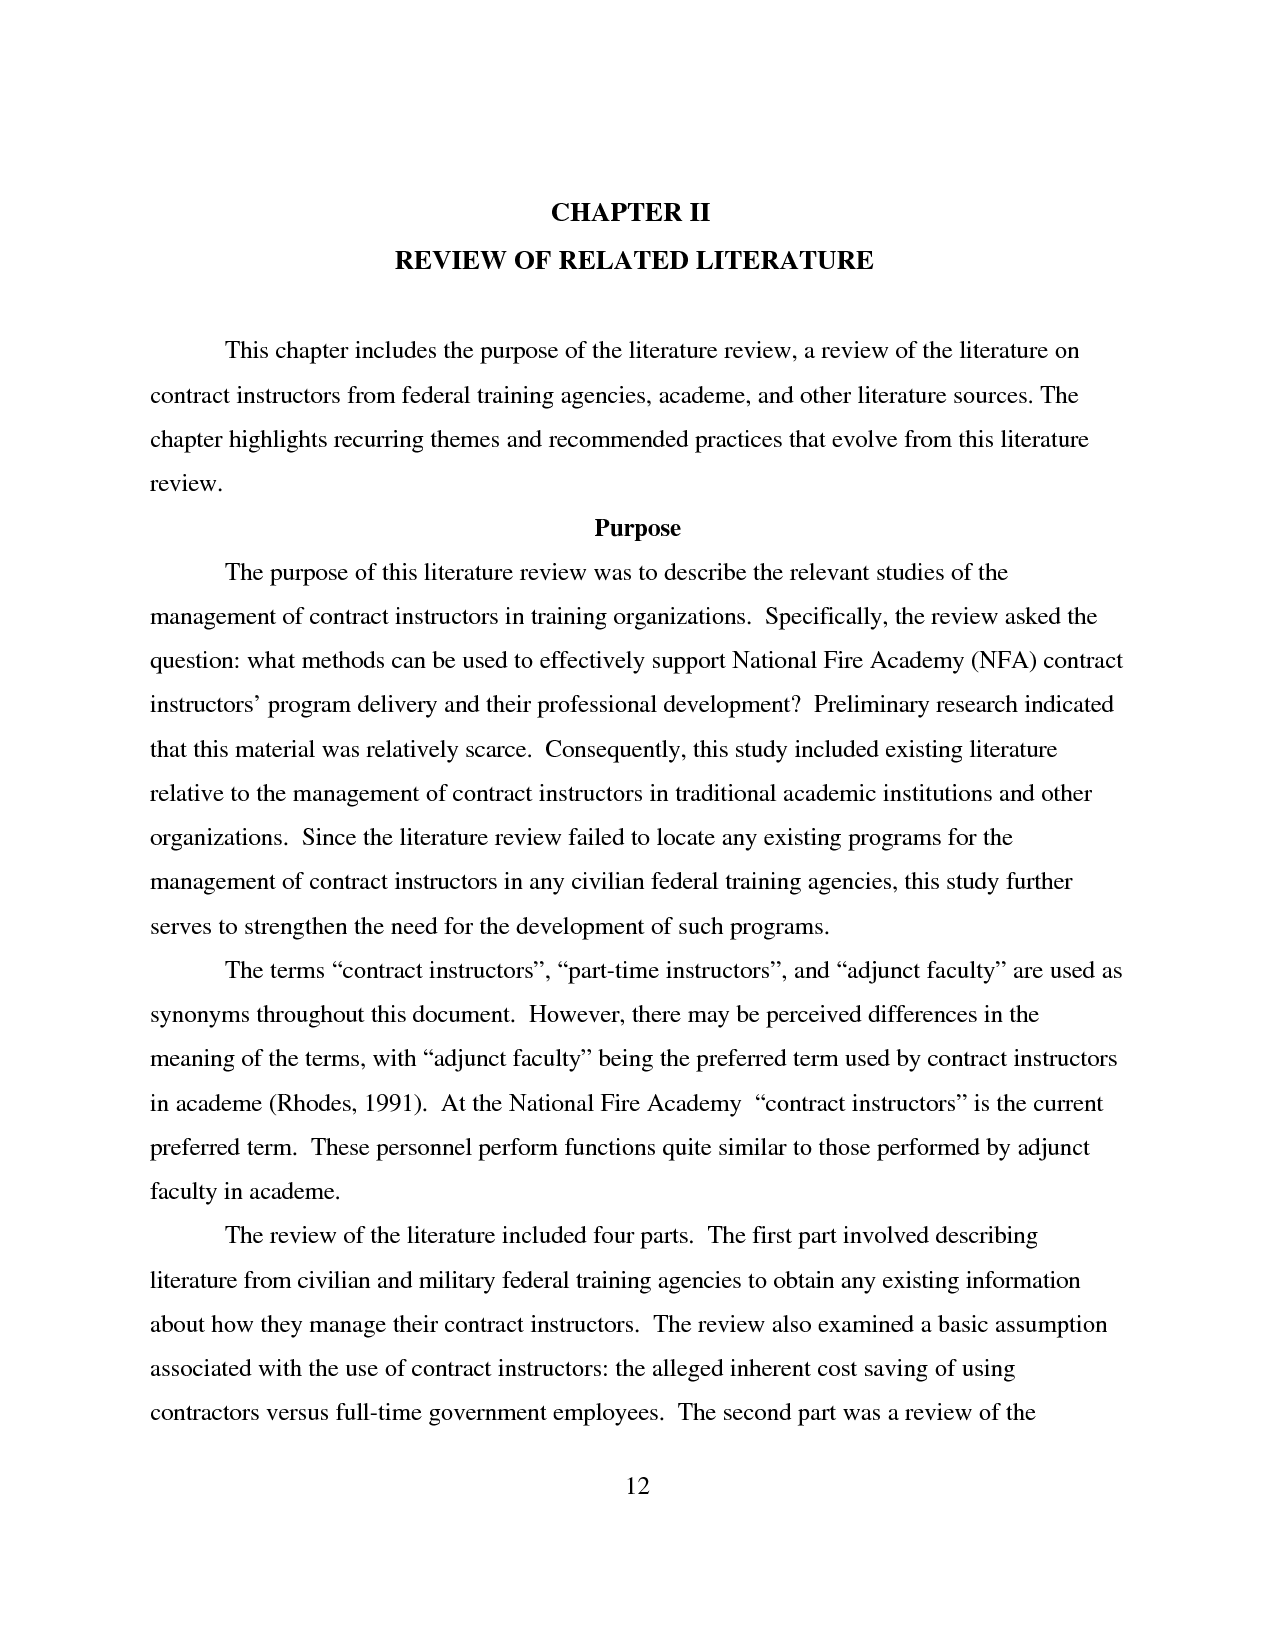 002 Example Research Paper Review Related Literature Imposing Of A Full